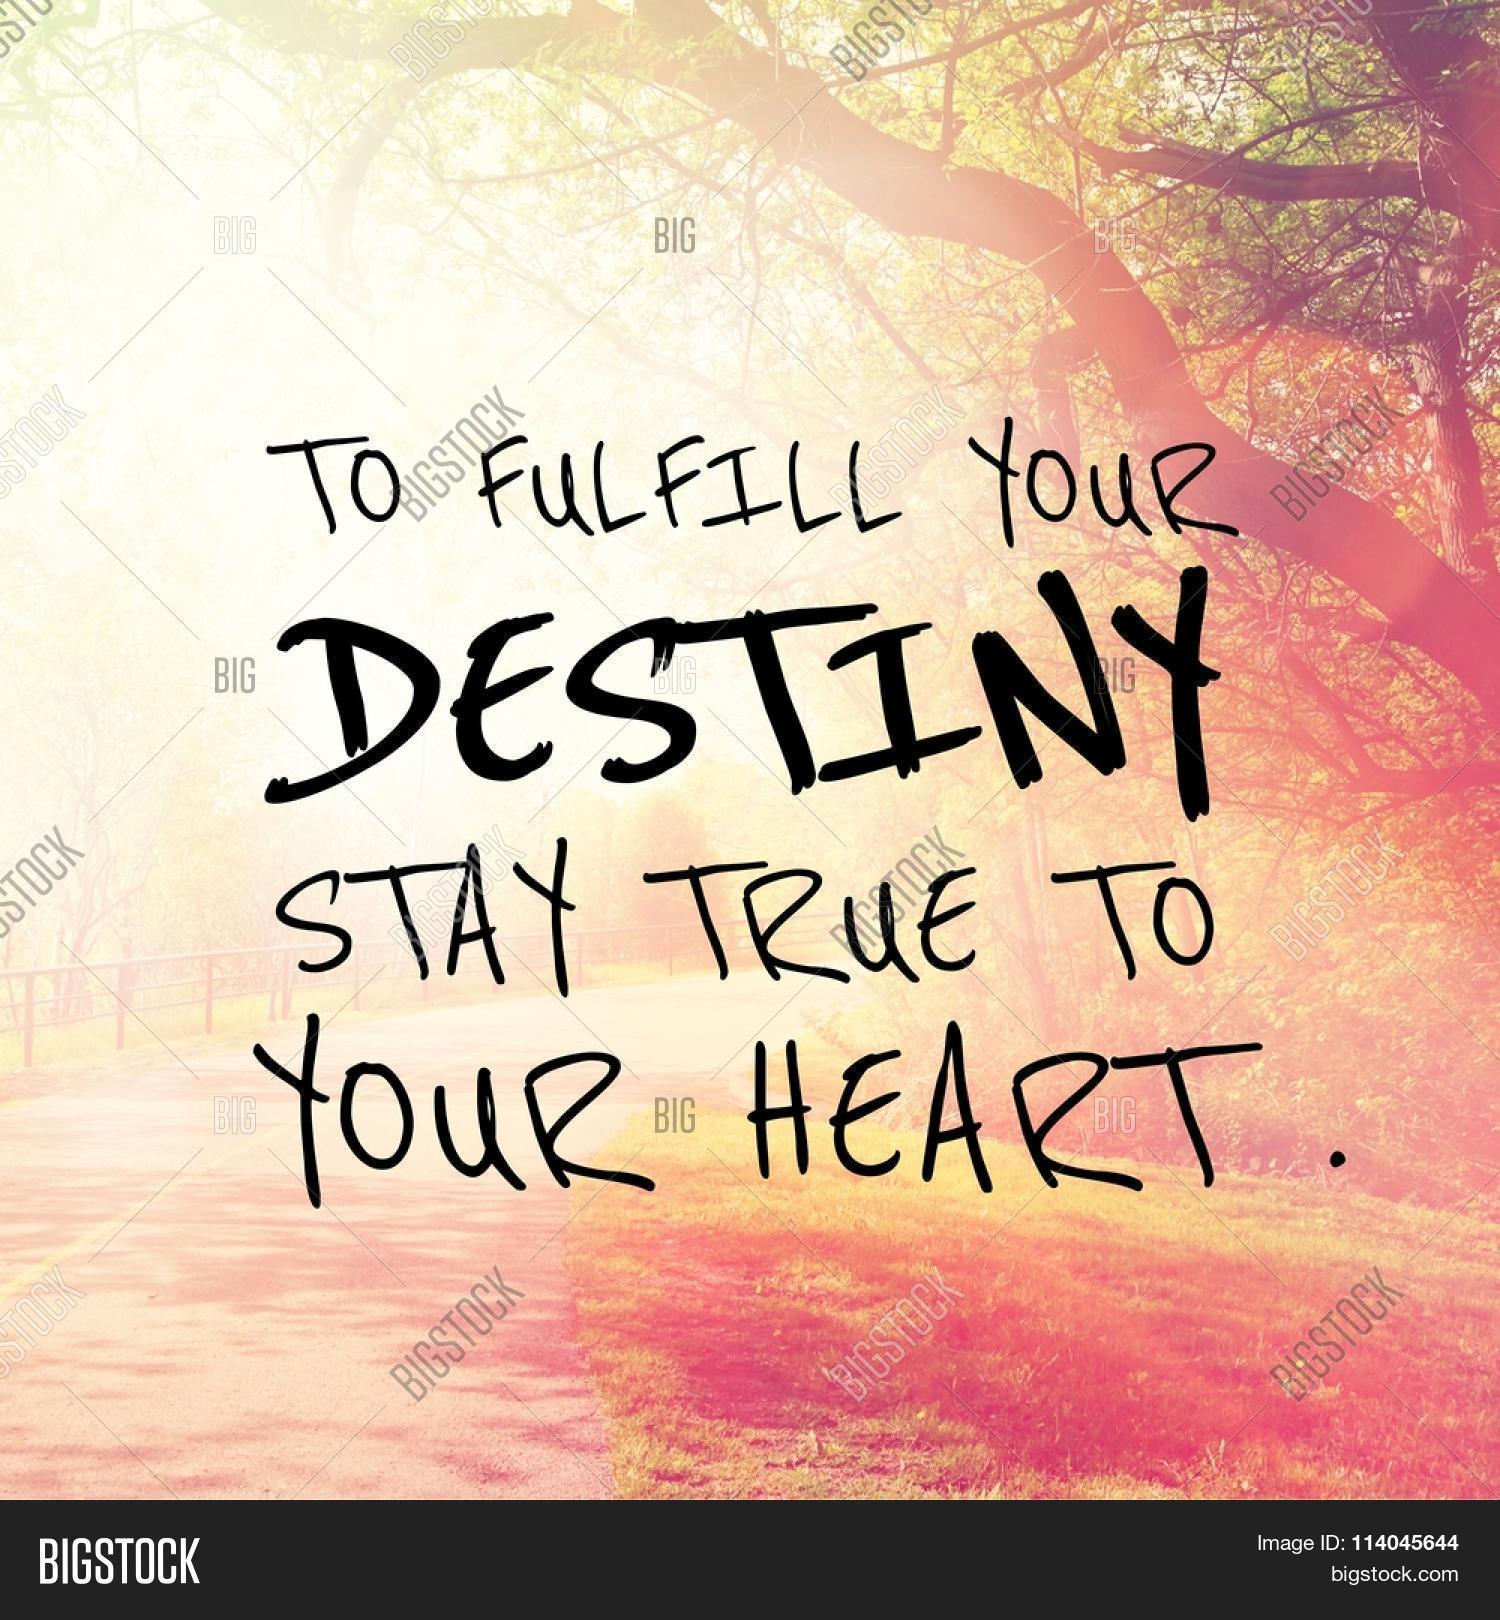 Inspirational Quotes Destiny: Inspirational Typographic Quote - Image & Photo